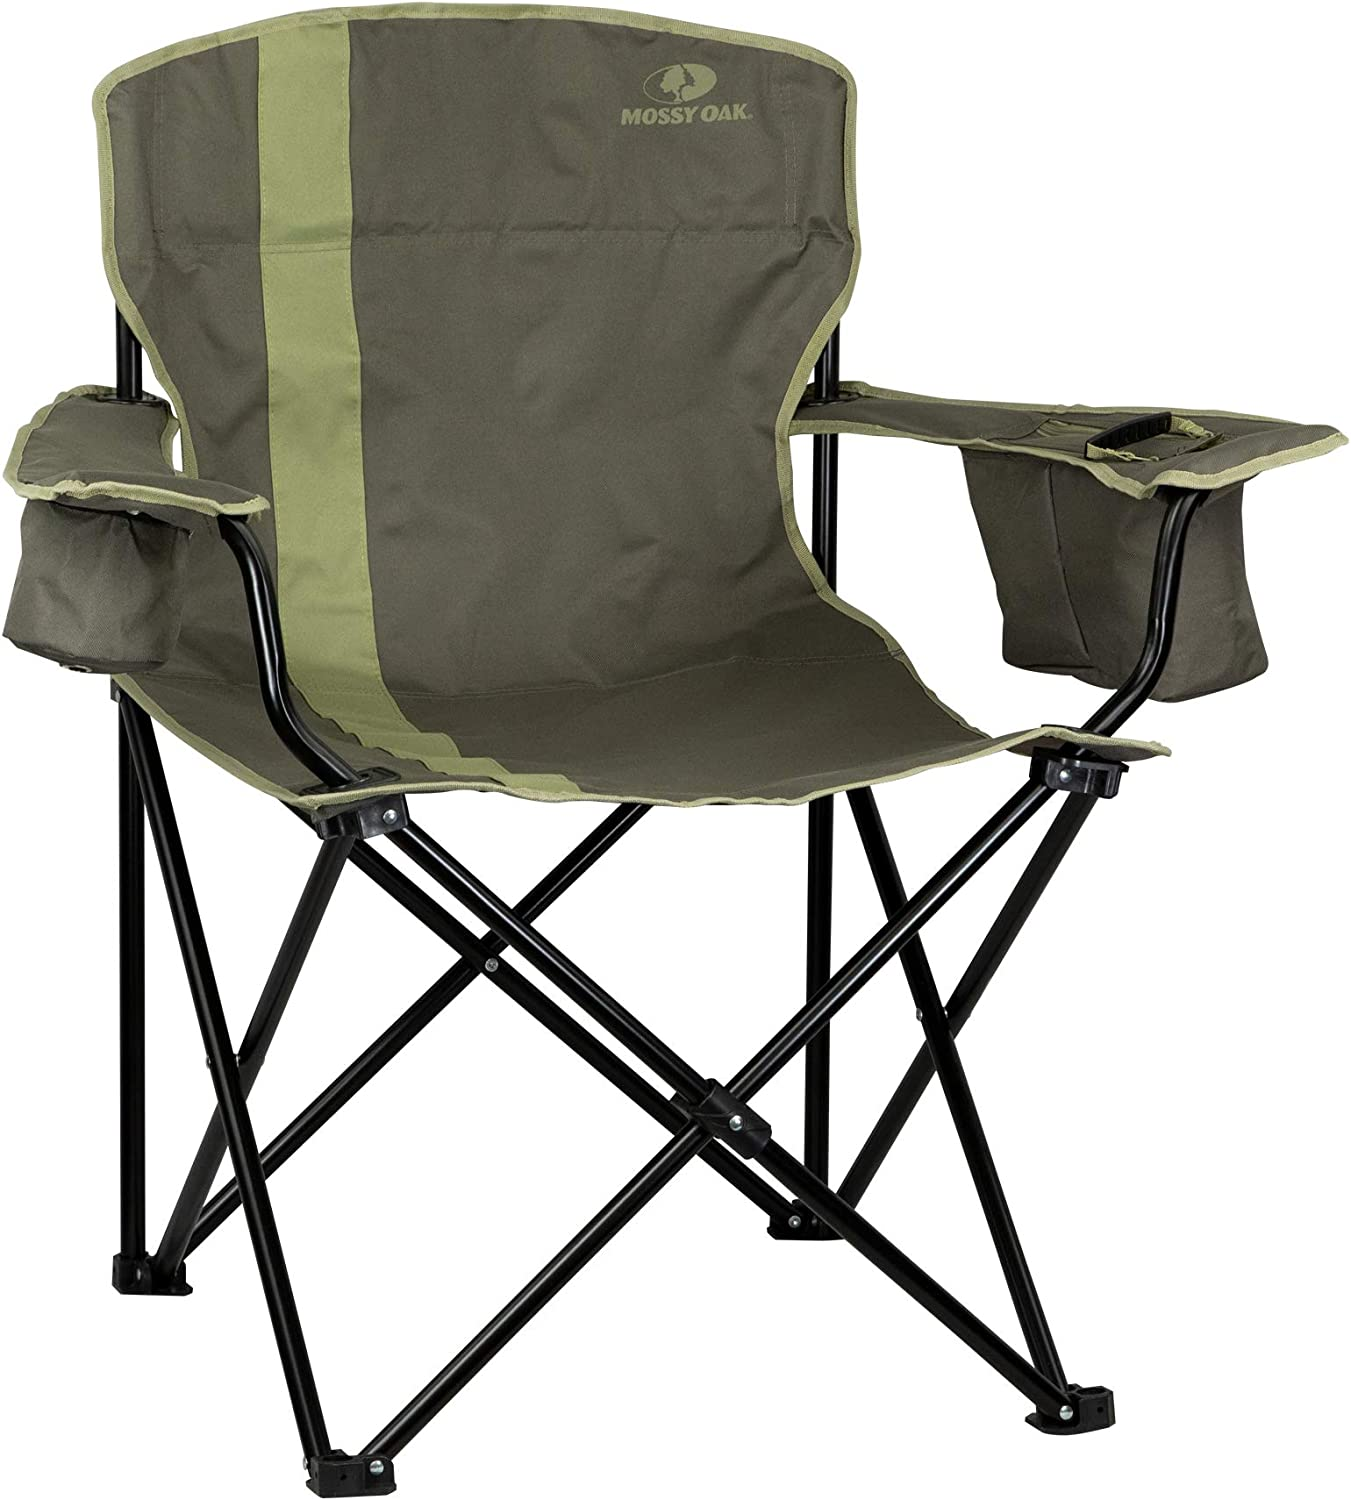 Mossy Oak Heavy Duty Camping Chair- Best High Back Camping Chair